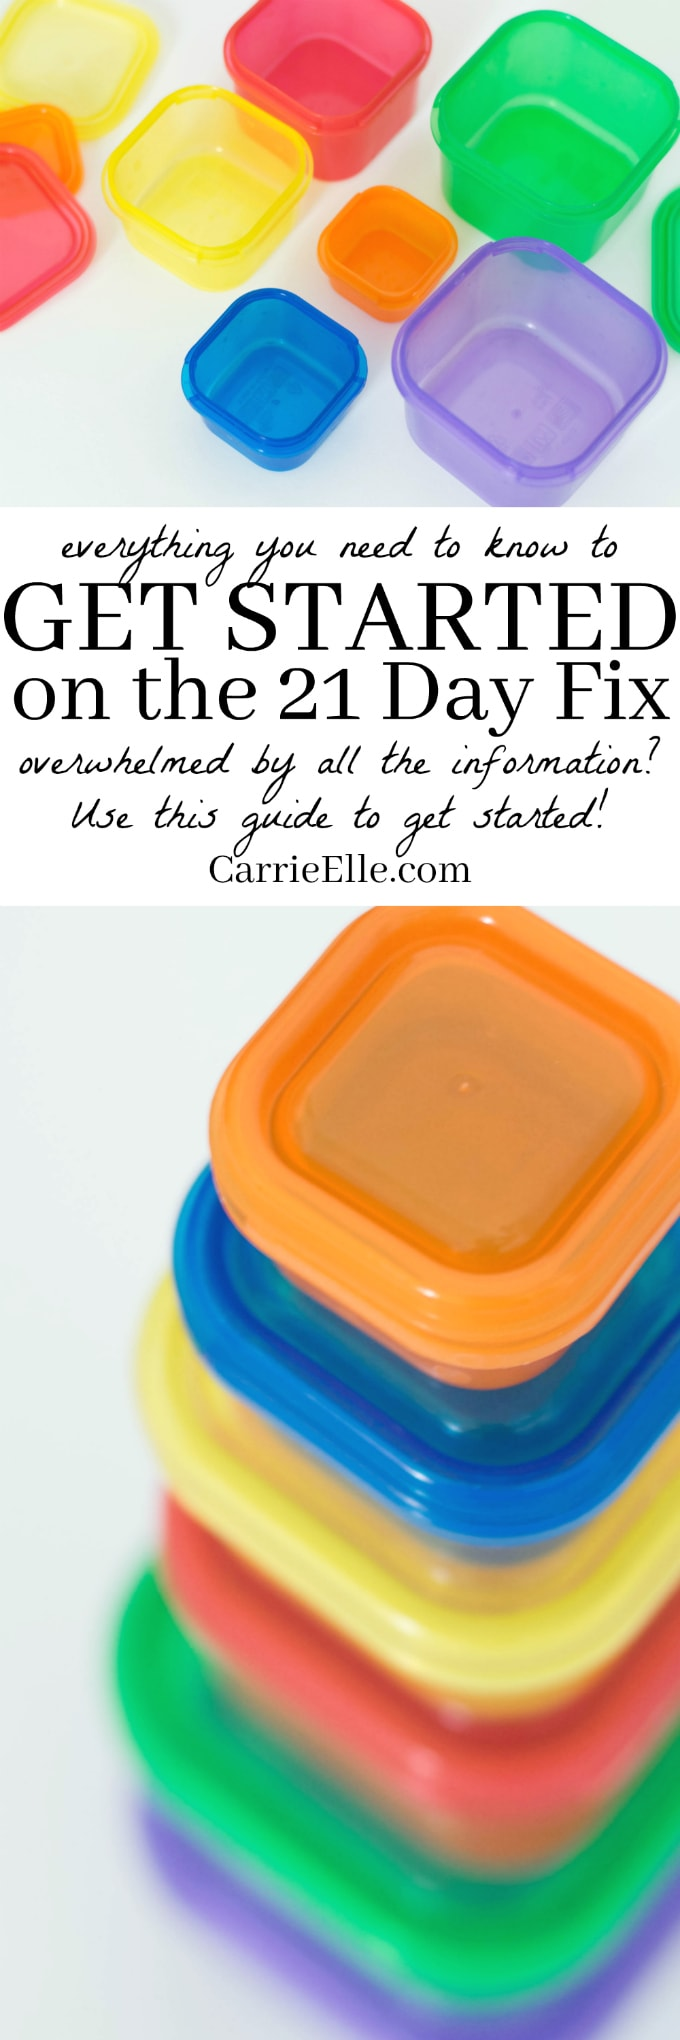 Get-Started-on-the-21-Day-Fix